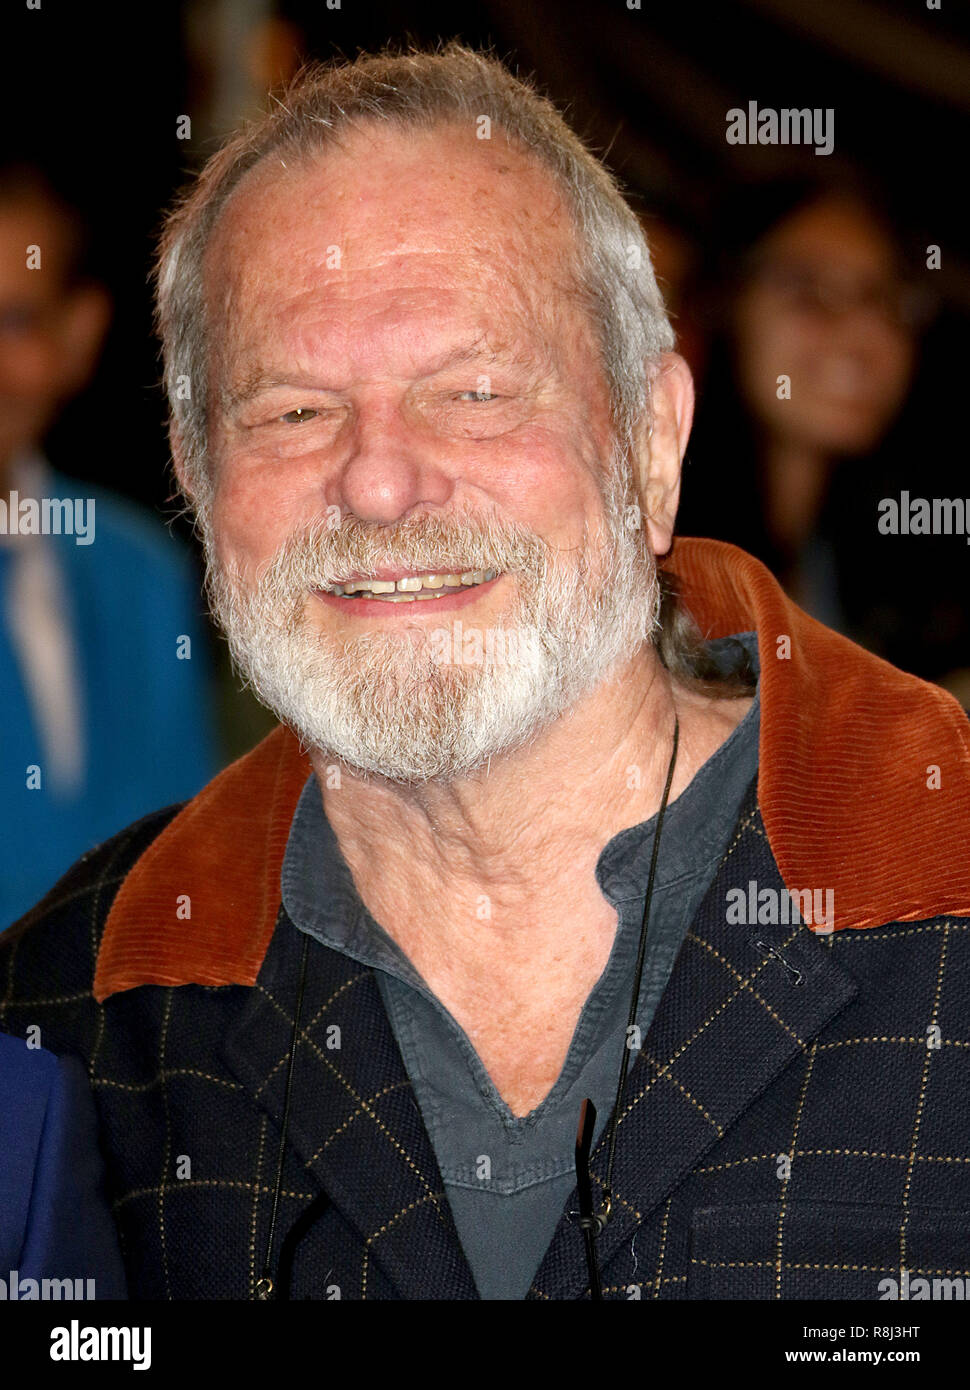 Oct 10, 2018  - Terry Gilliam attending London Film Festival opening night gals, Widows European Premiere in London, UK - Stock Image